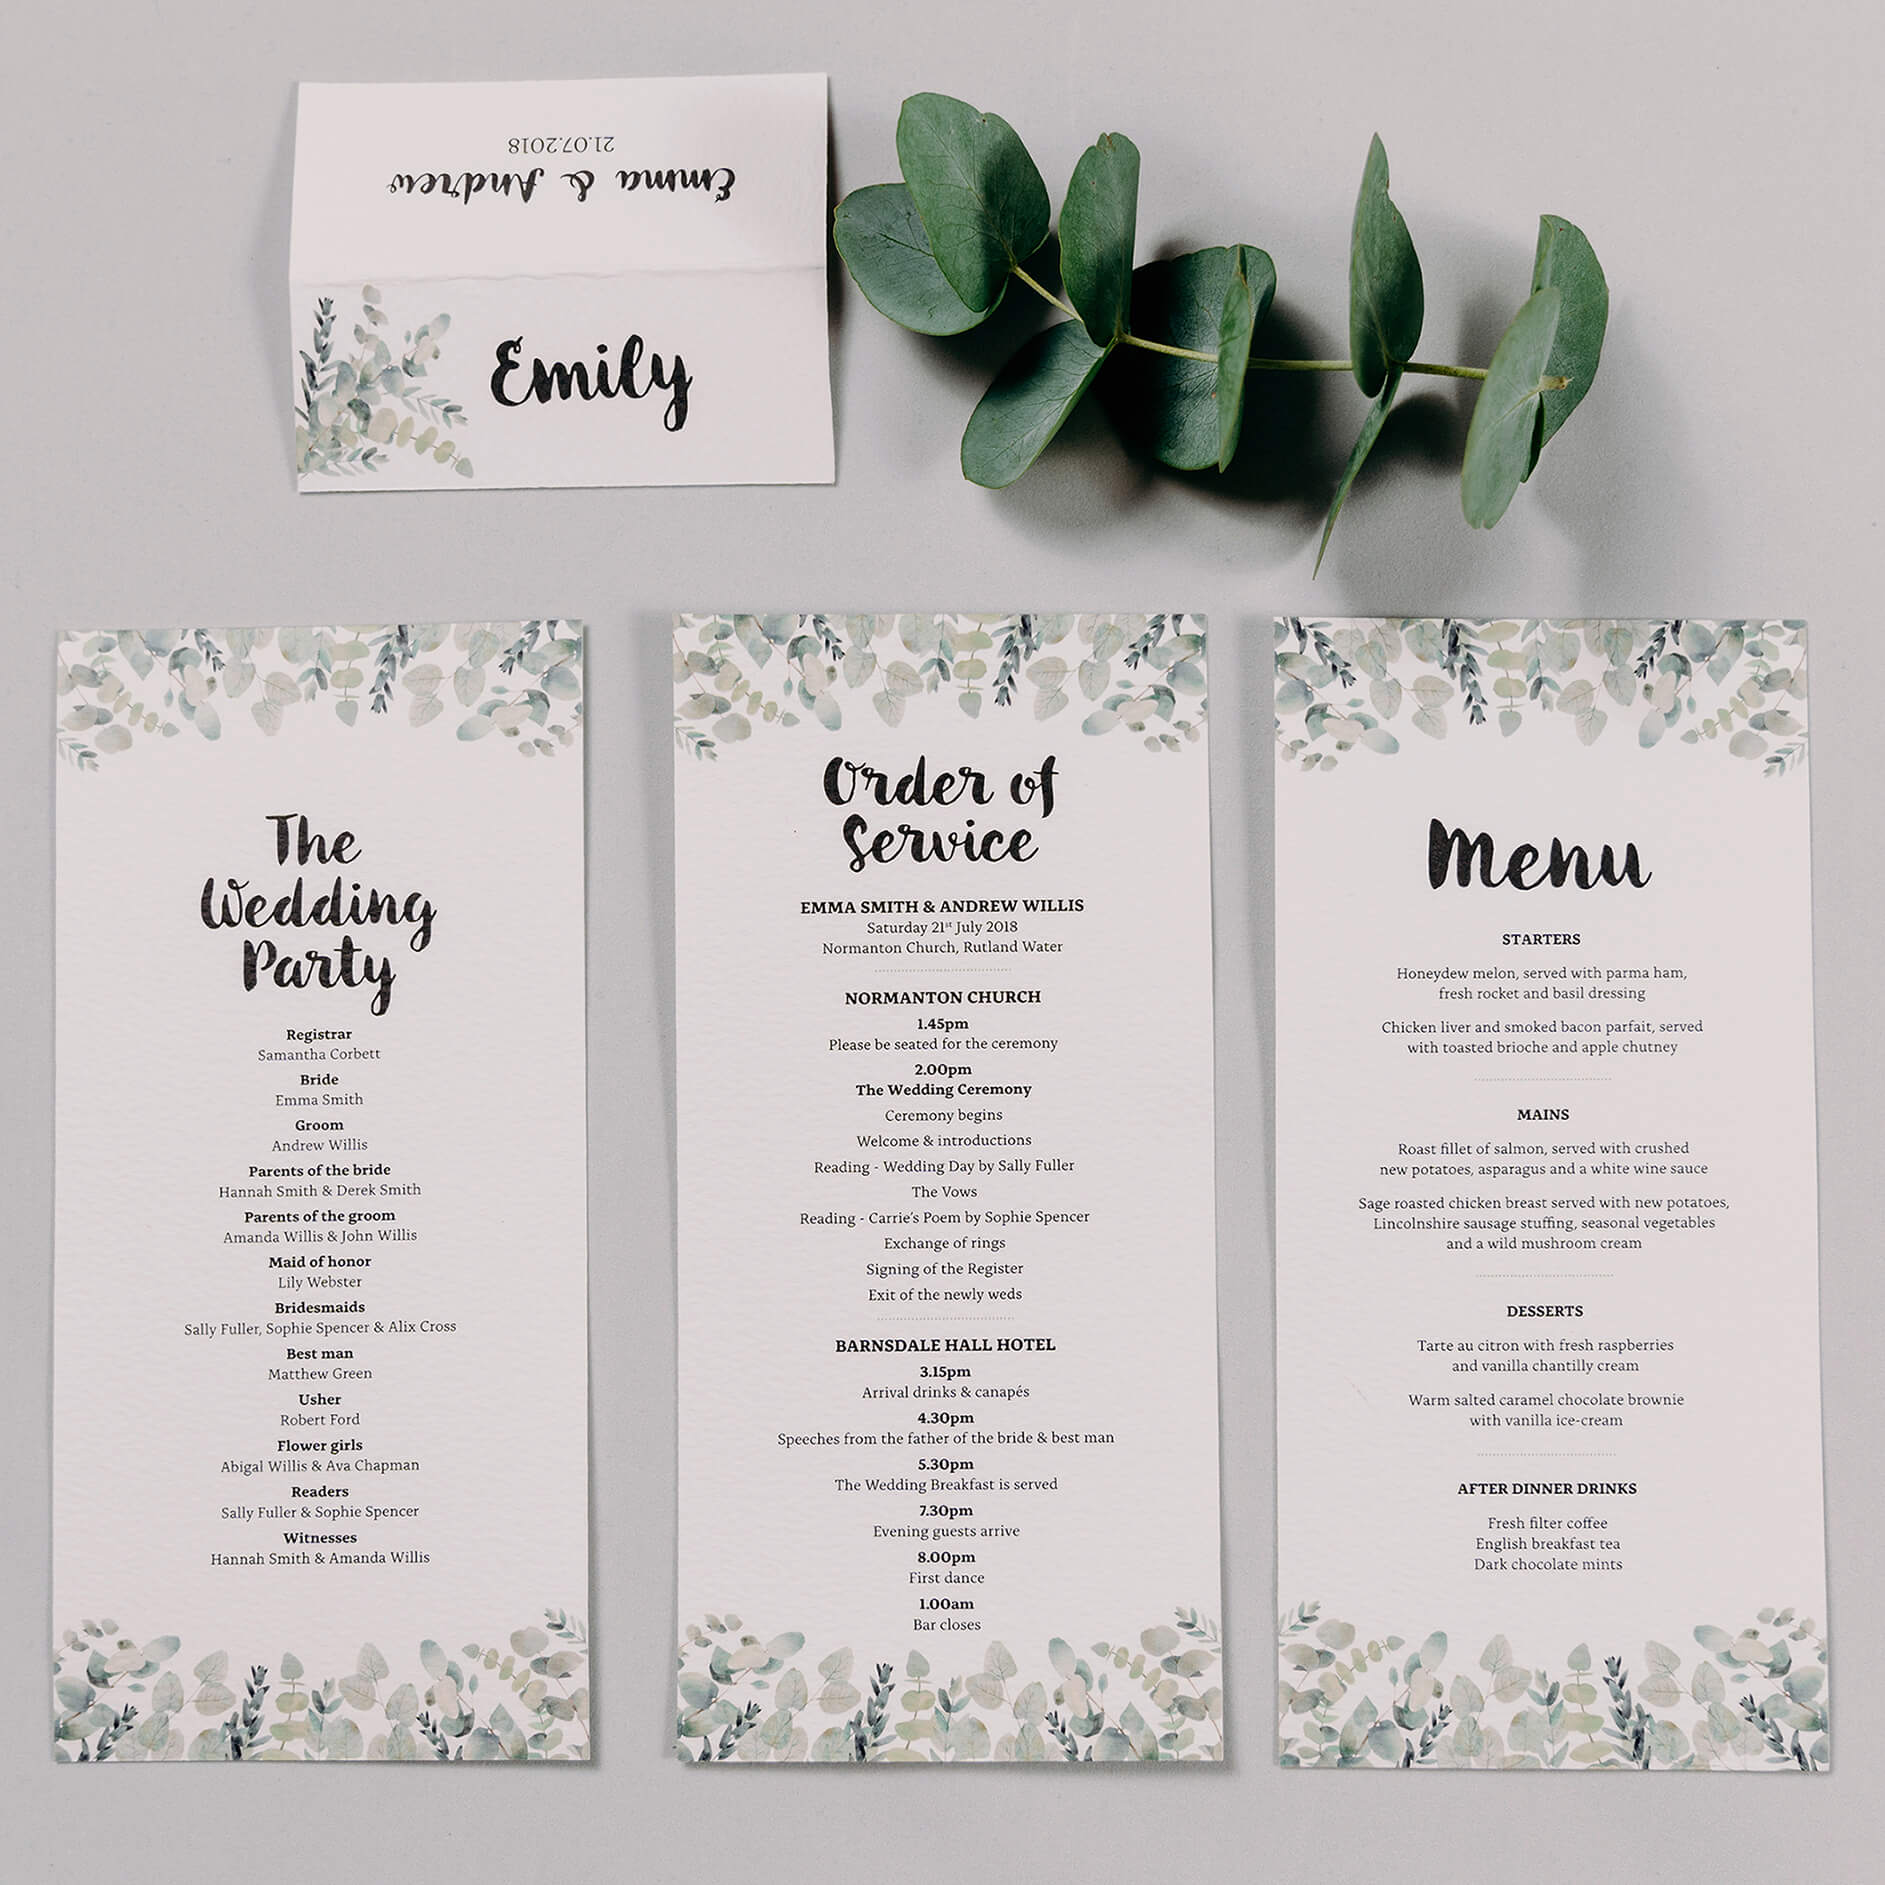 Rustic Green & White Eucalyptus Wedding Place Name Card, Menu Card and Double Sided Order Of Service Card